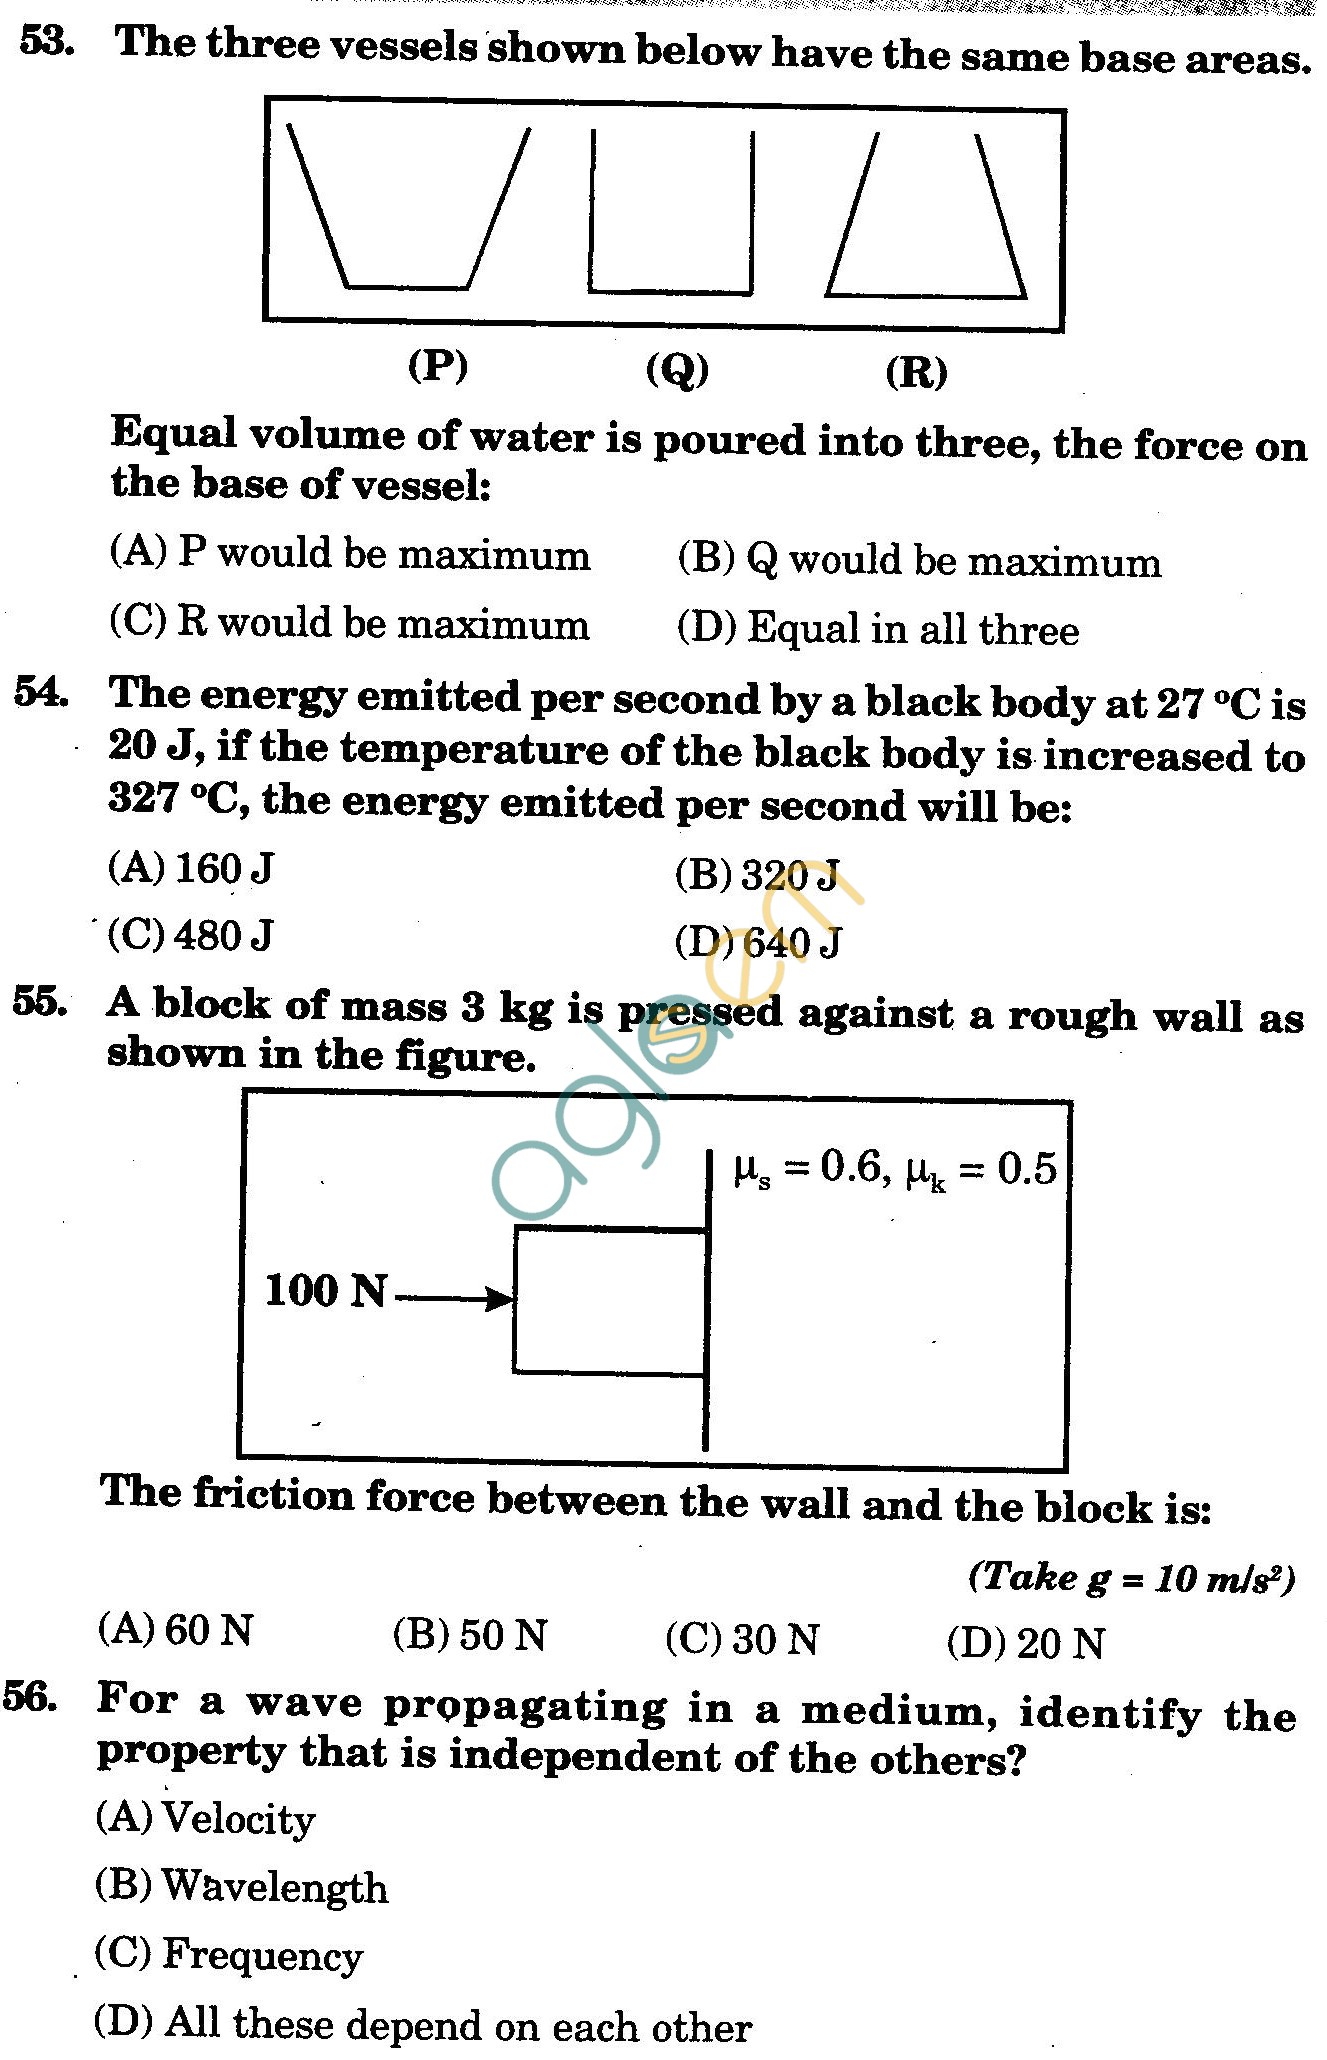 NSTSE 2009 Class XI PCM Question Paper with Answers - Physics